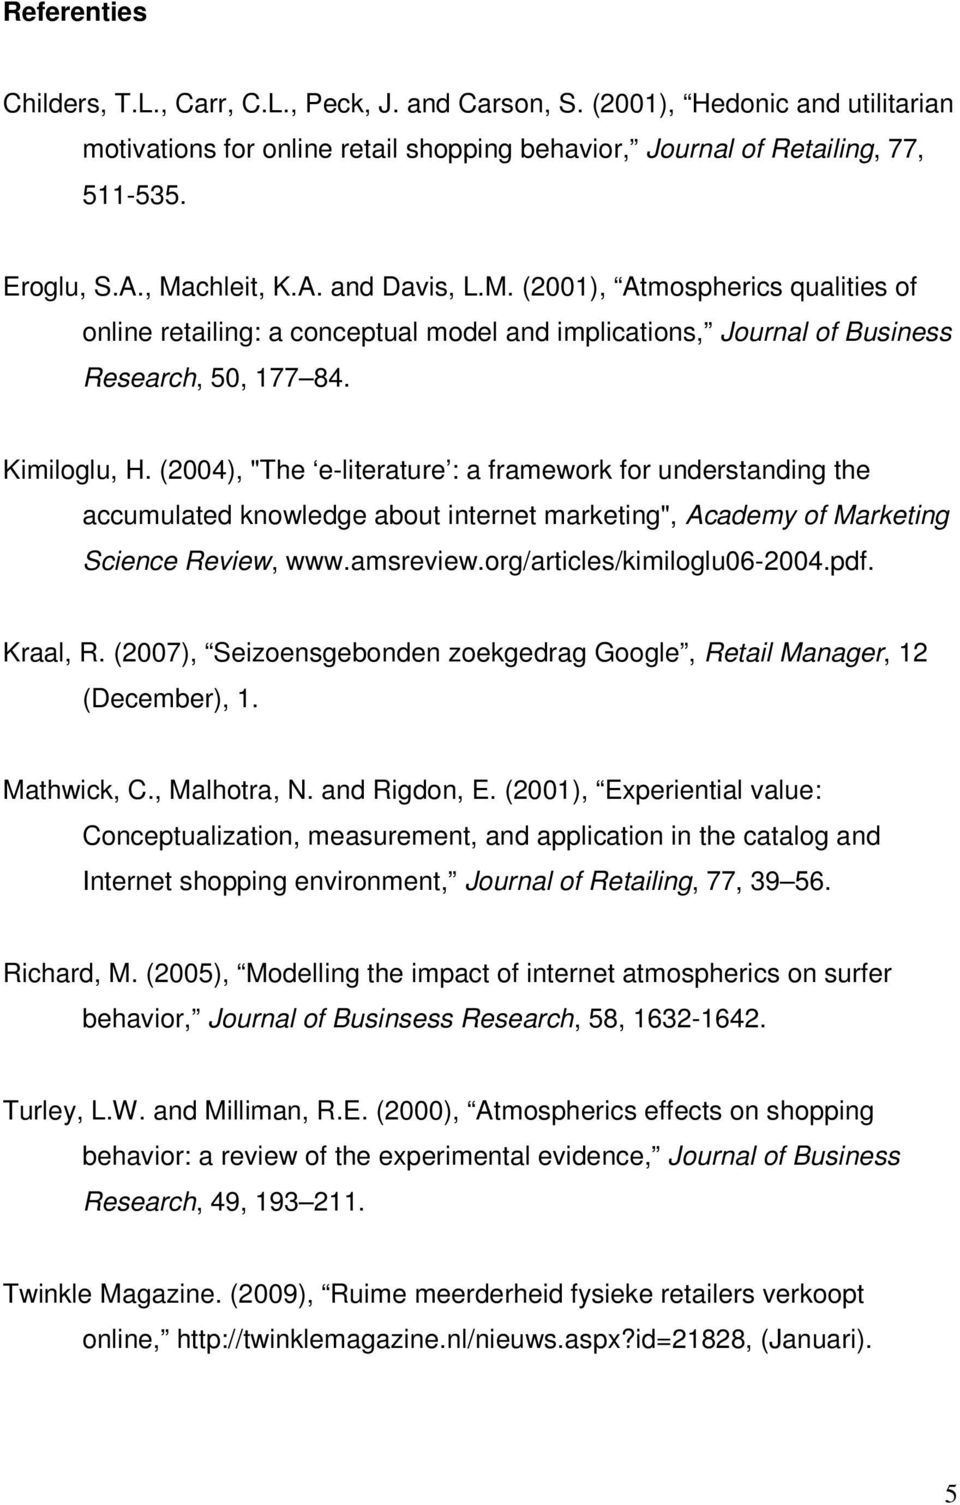 "(2004), ""The e-literature : a framework for understanding the accumulated knowledge about internet marketing"", Academy of Marketing Science Review, www.amsreview.org/articles/kimiloglu06-2004.pdf."